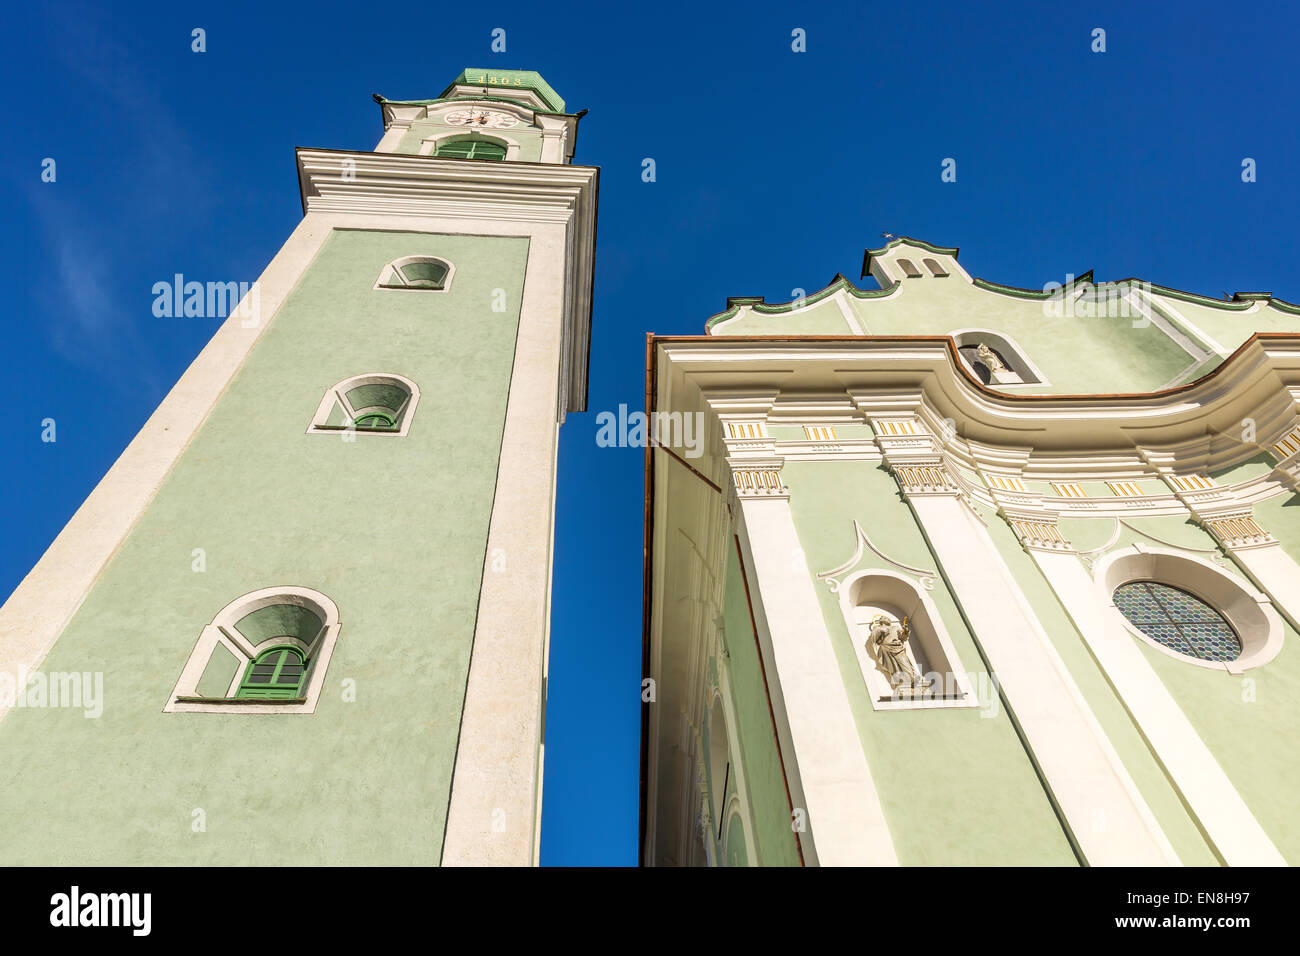 Church of St. John the Baptist Dobbiaco - Toblach, Italy - Stock Image